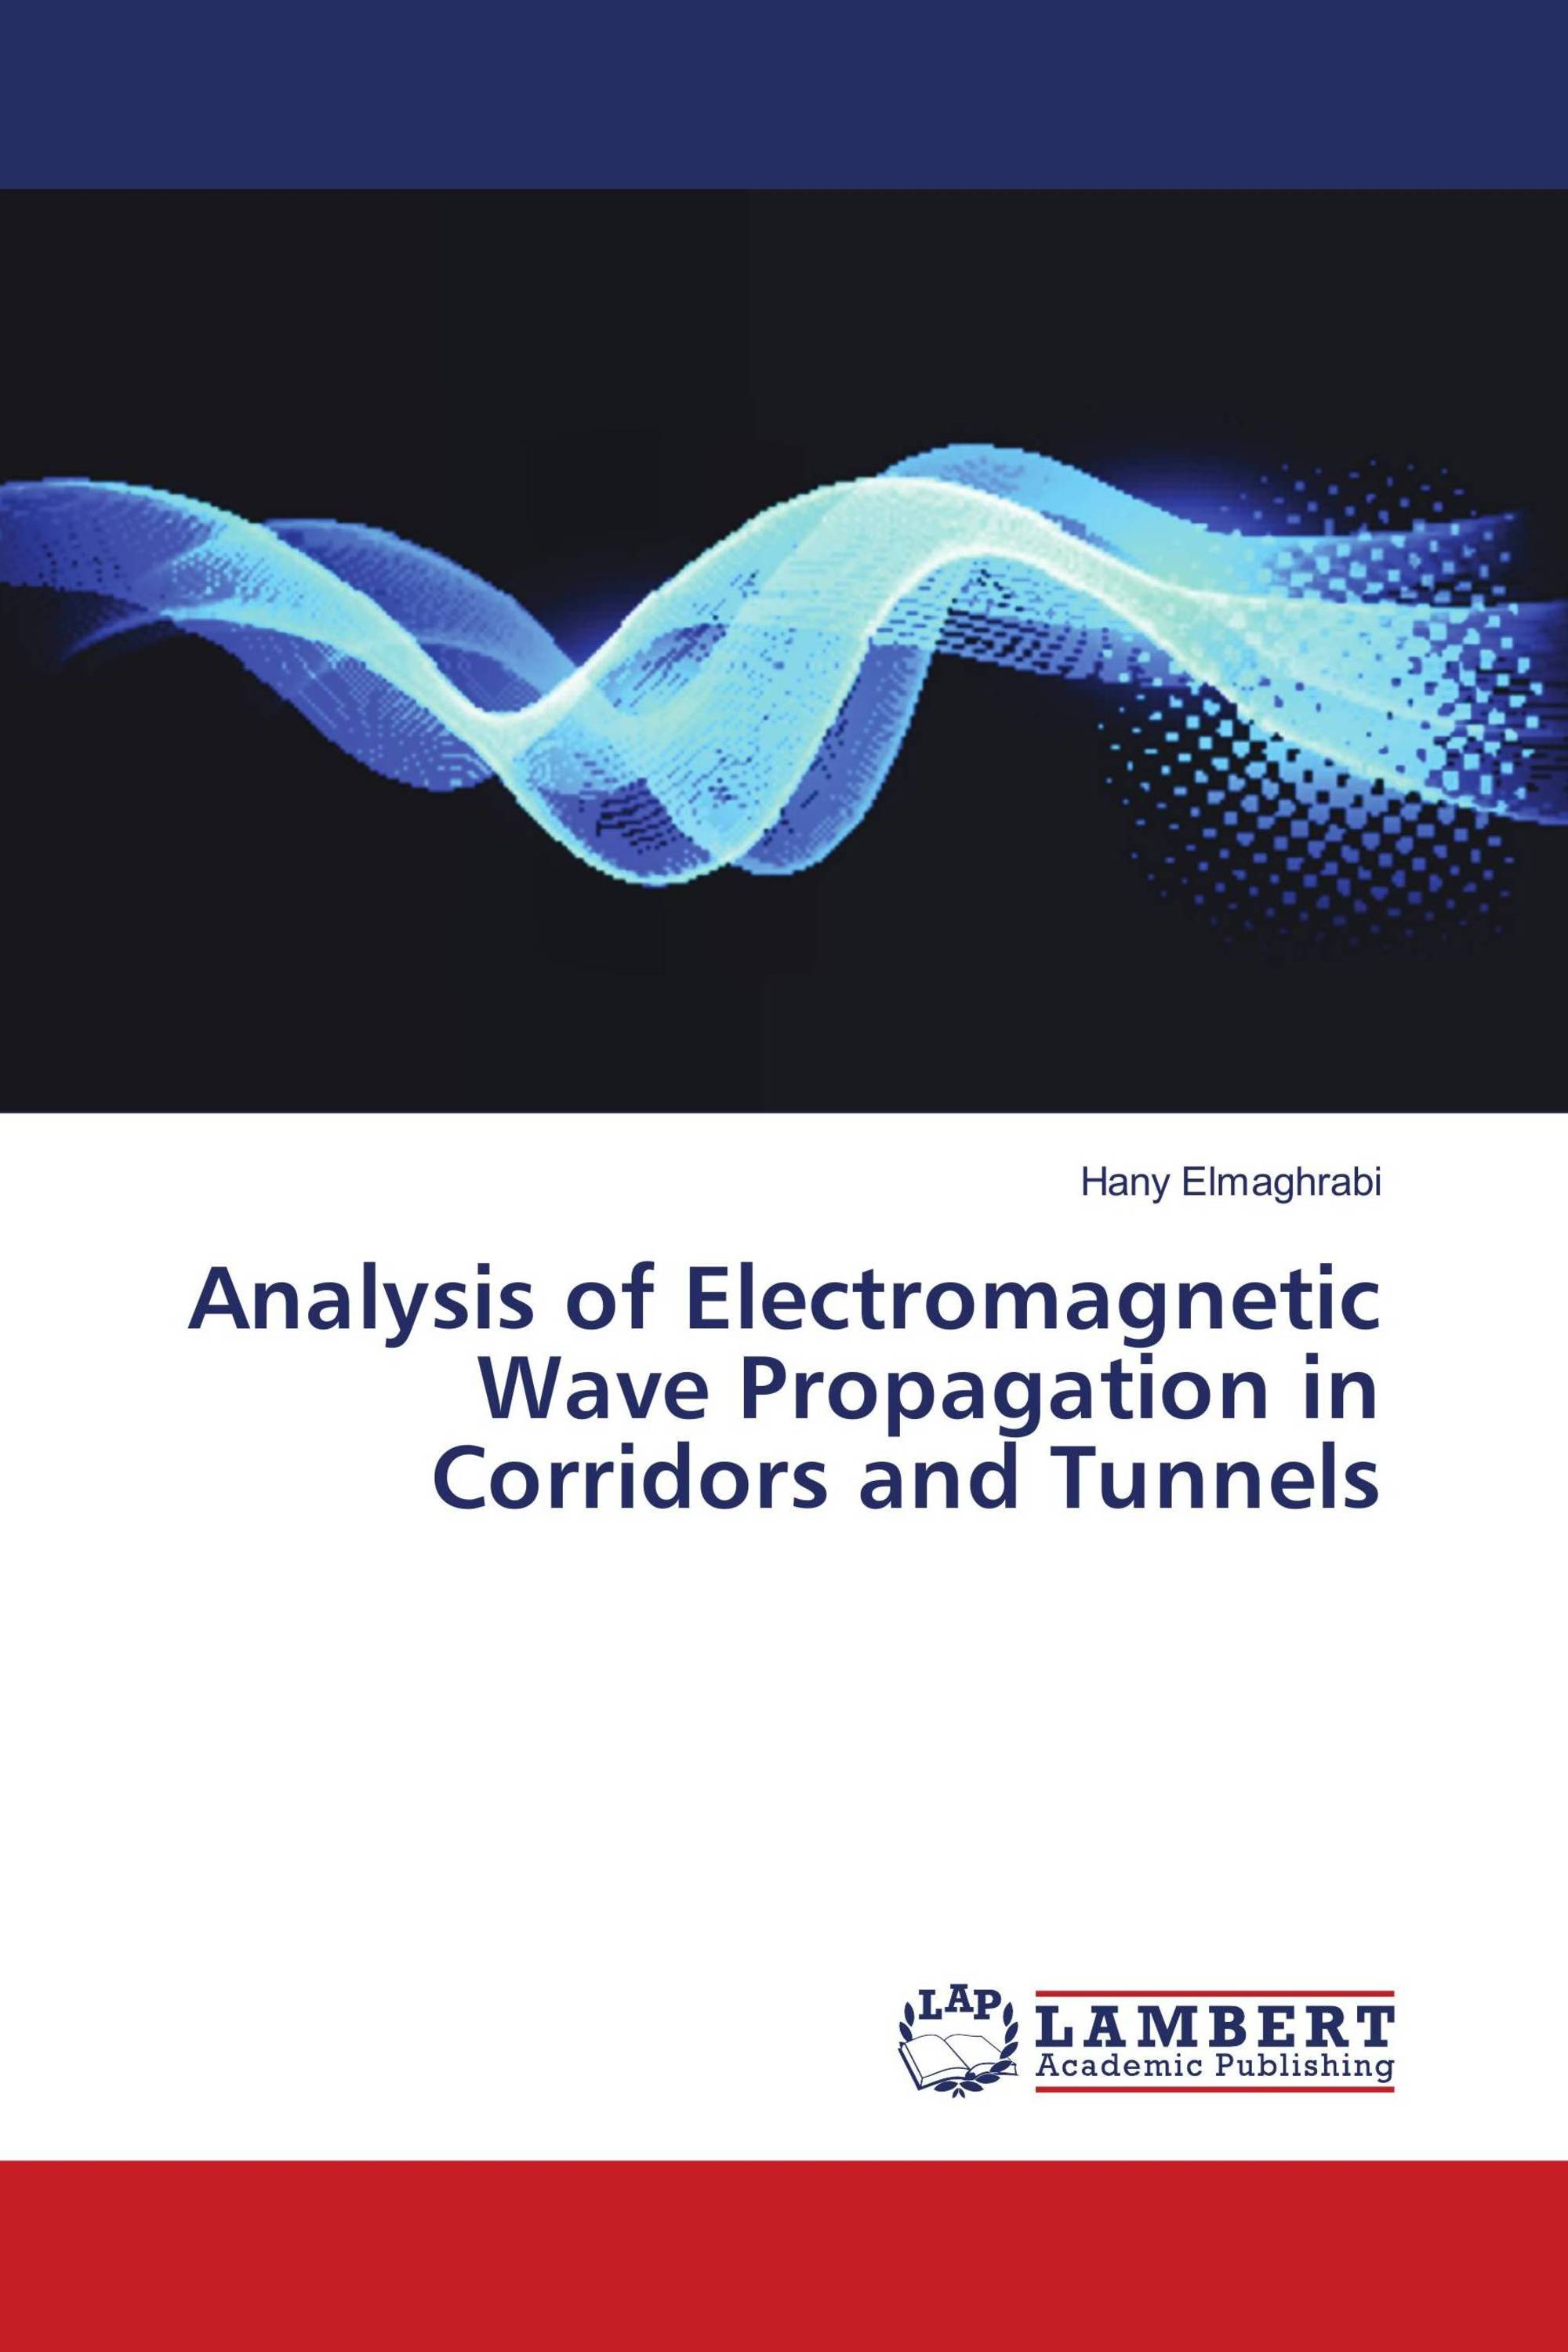 Analysis of Electromagnetic Wave Propagation in Corridors and